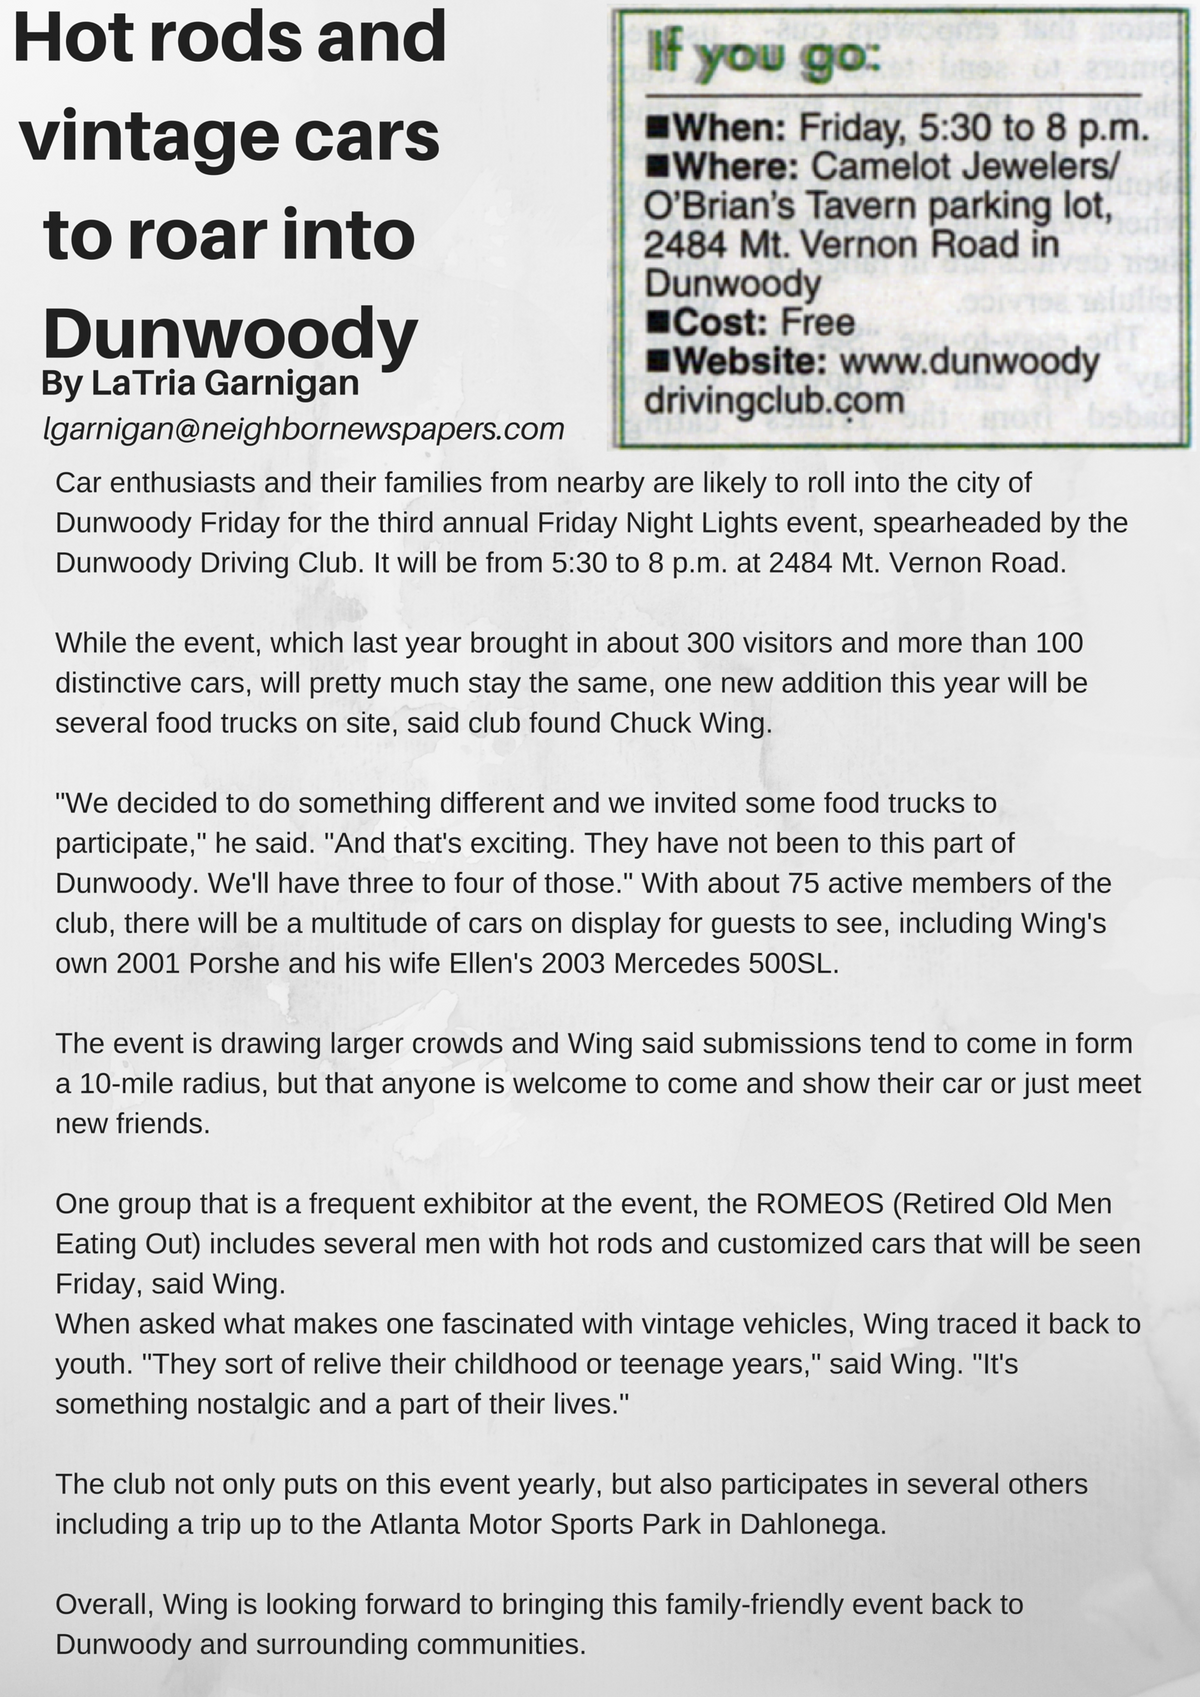 Hot rods and vintage cars roar into Dunwoody.png